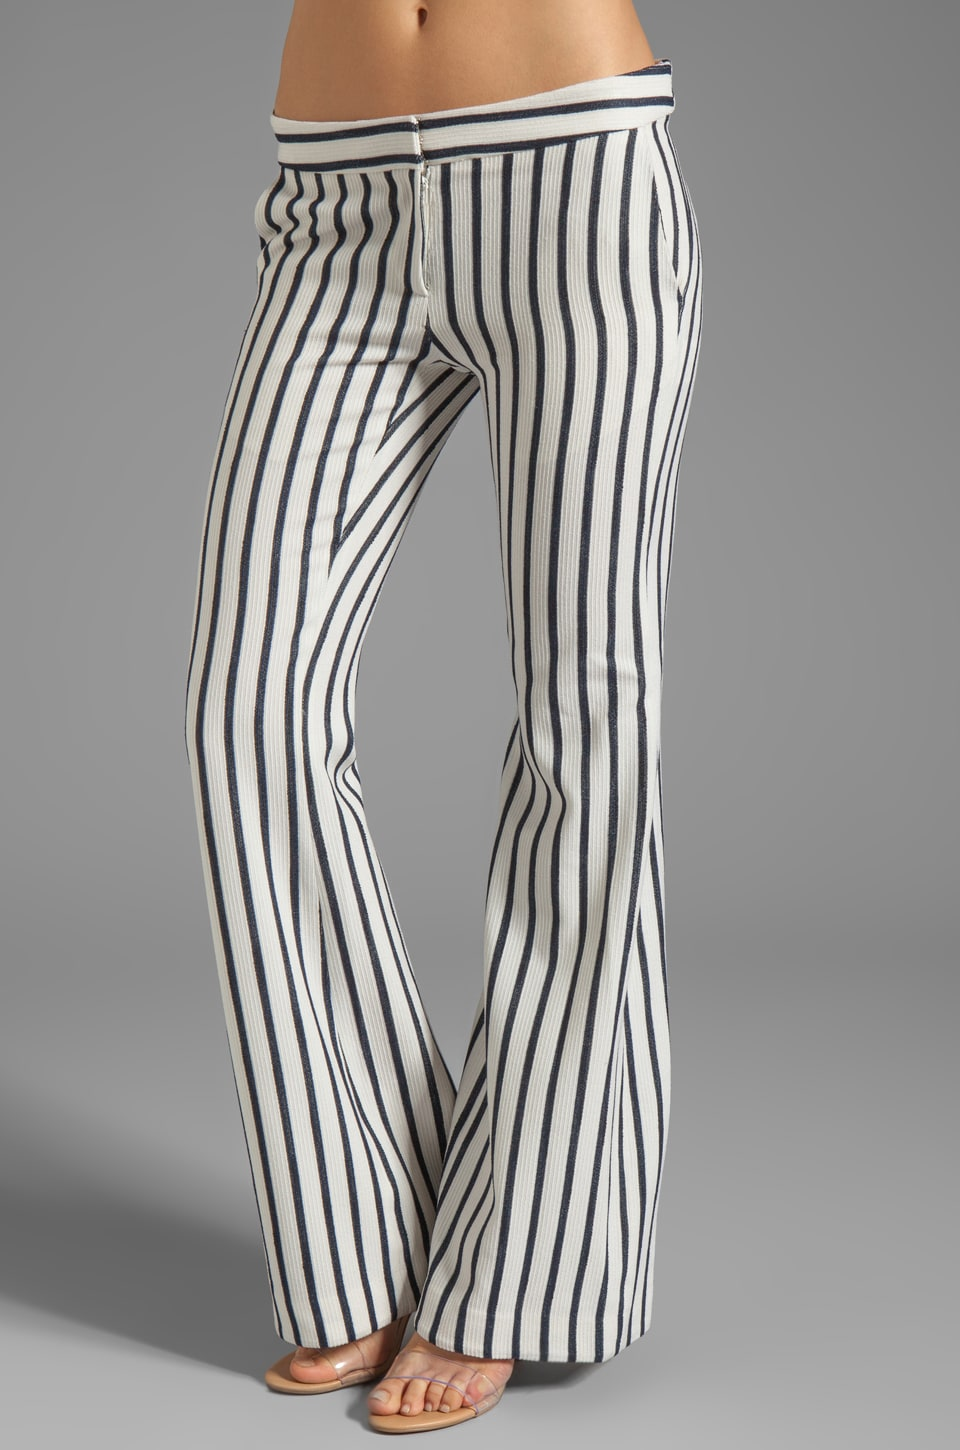 camilla and marc Clipped Striped Trouser in Ivory/Navy Stripe